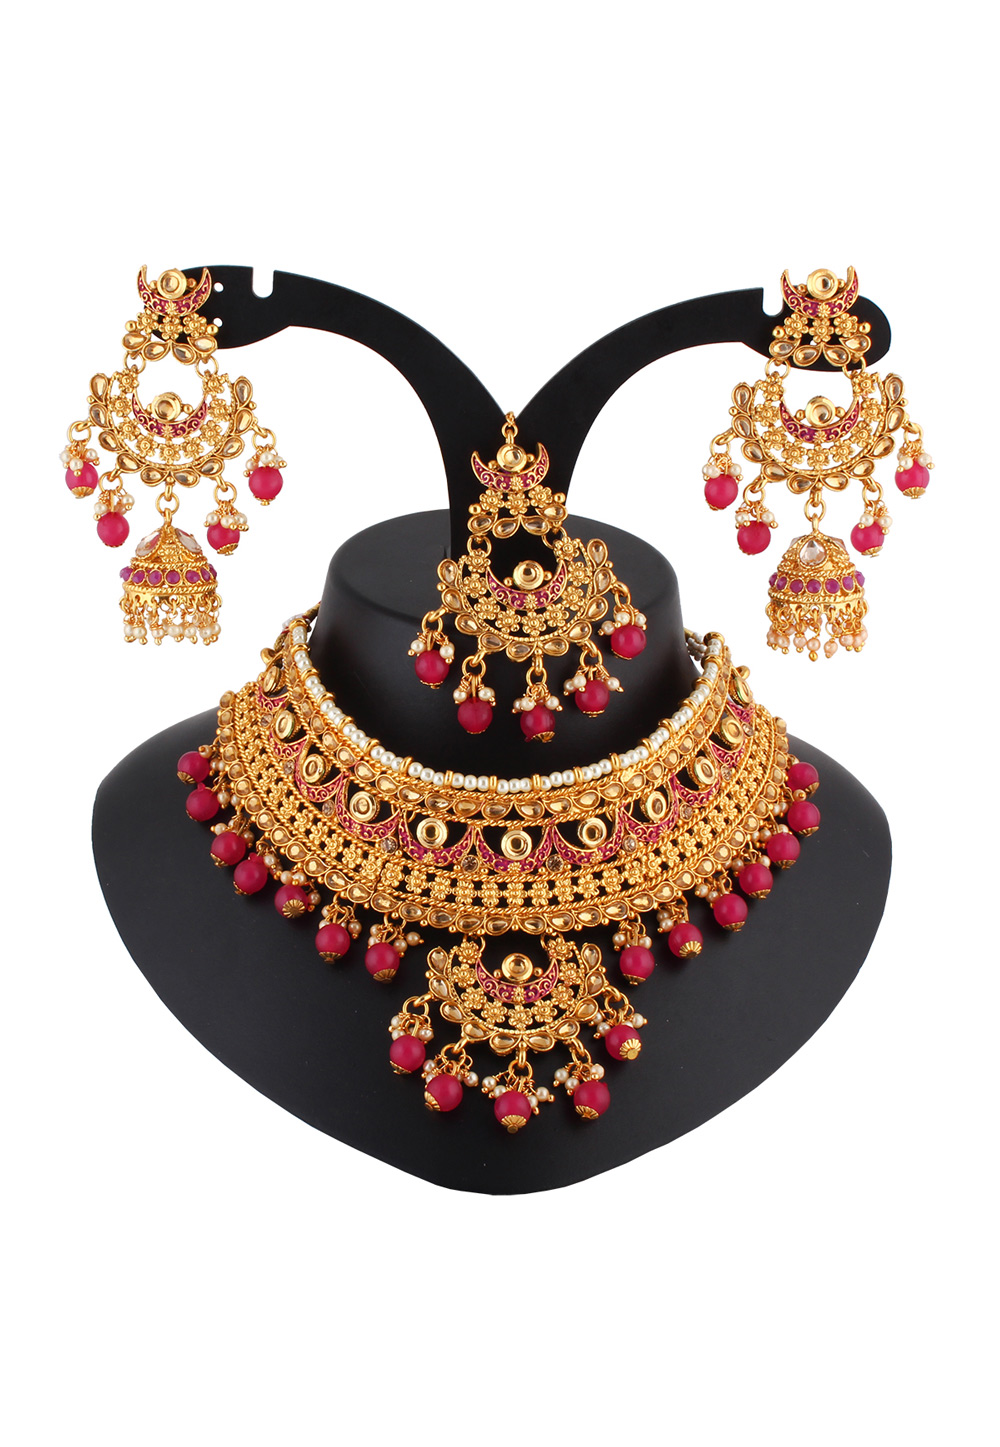 Pink Alloy Austrian Diamond Necklace Set With Earrings and Maang Tikka 223788